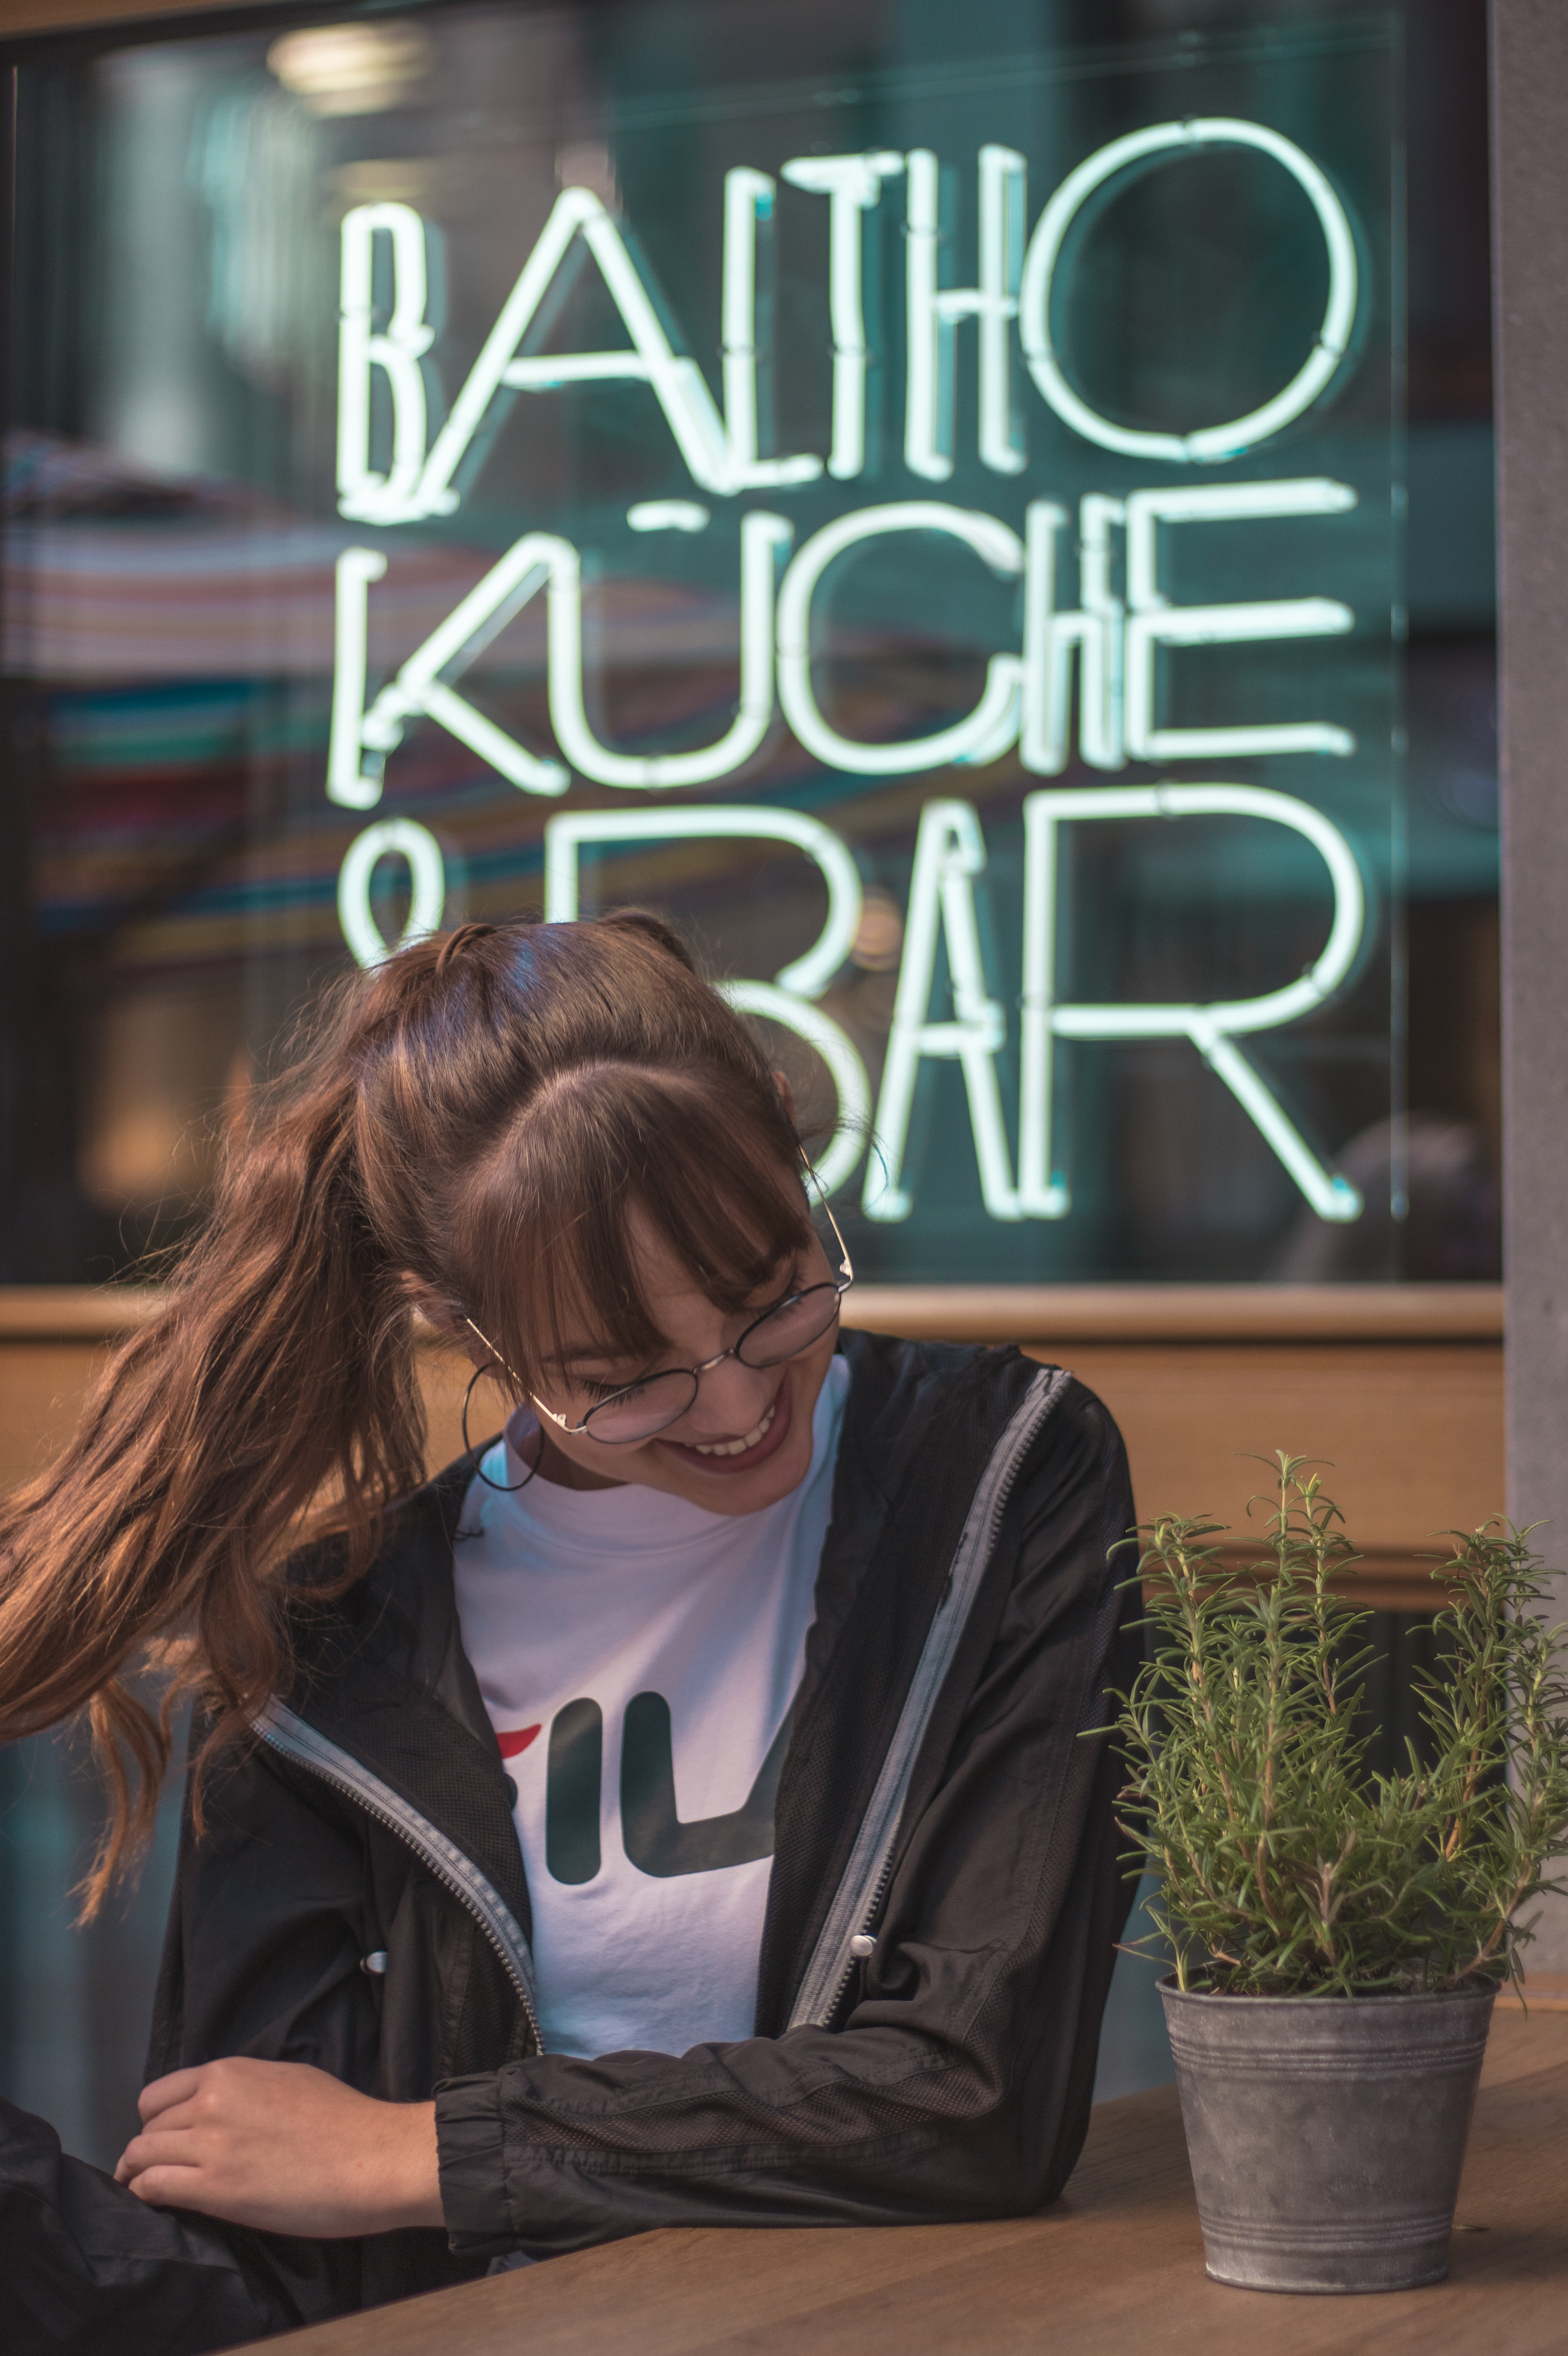 woman sitting outside Baltho Kuche and Bar during daytime